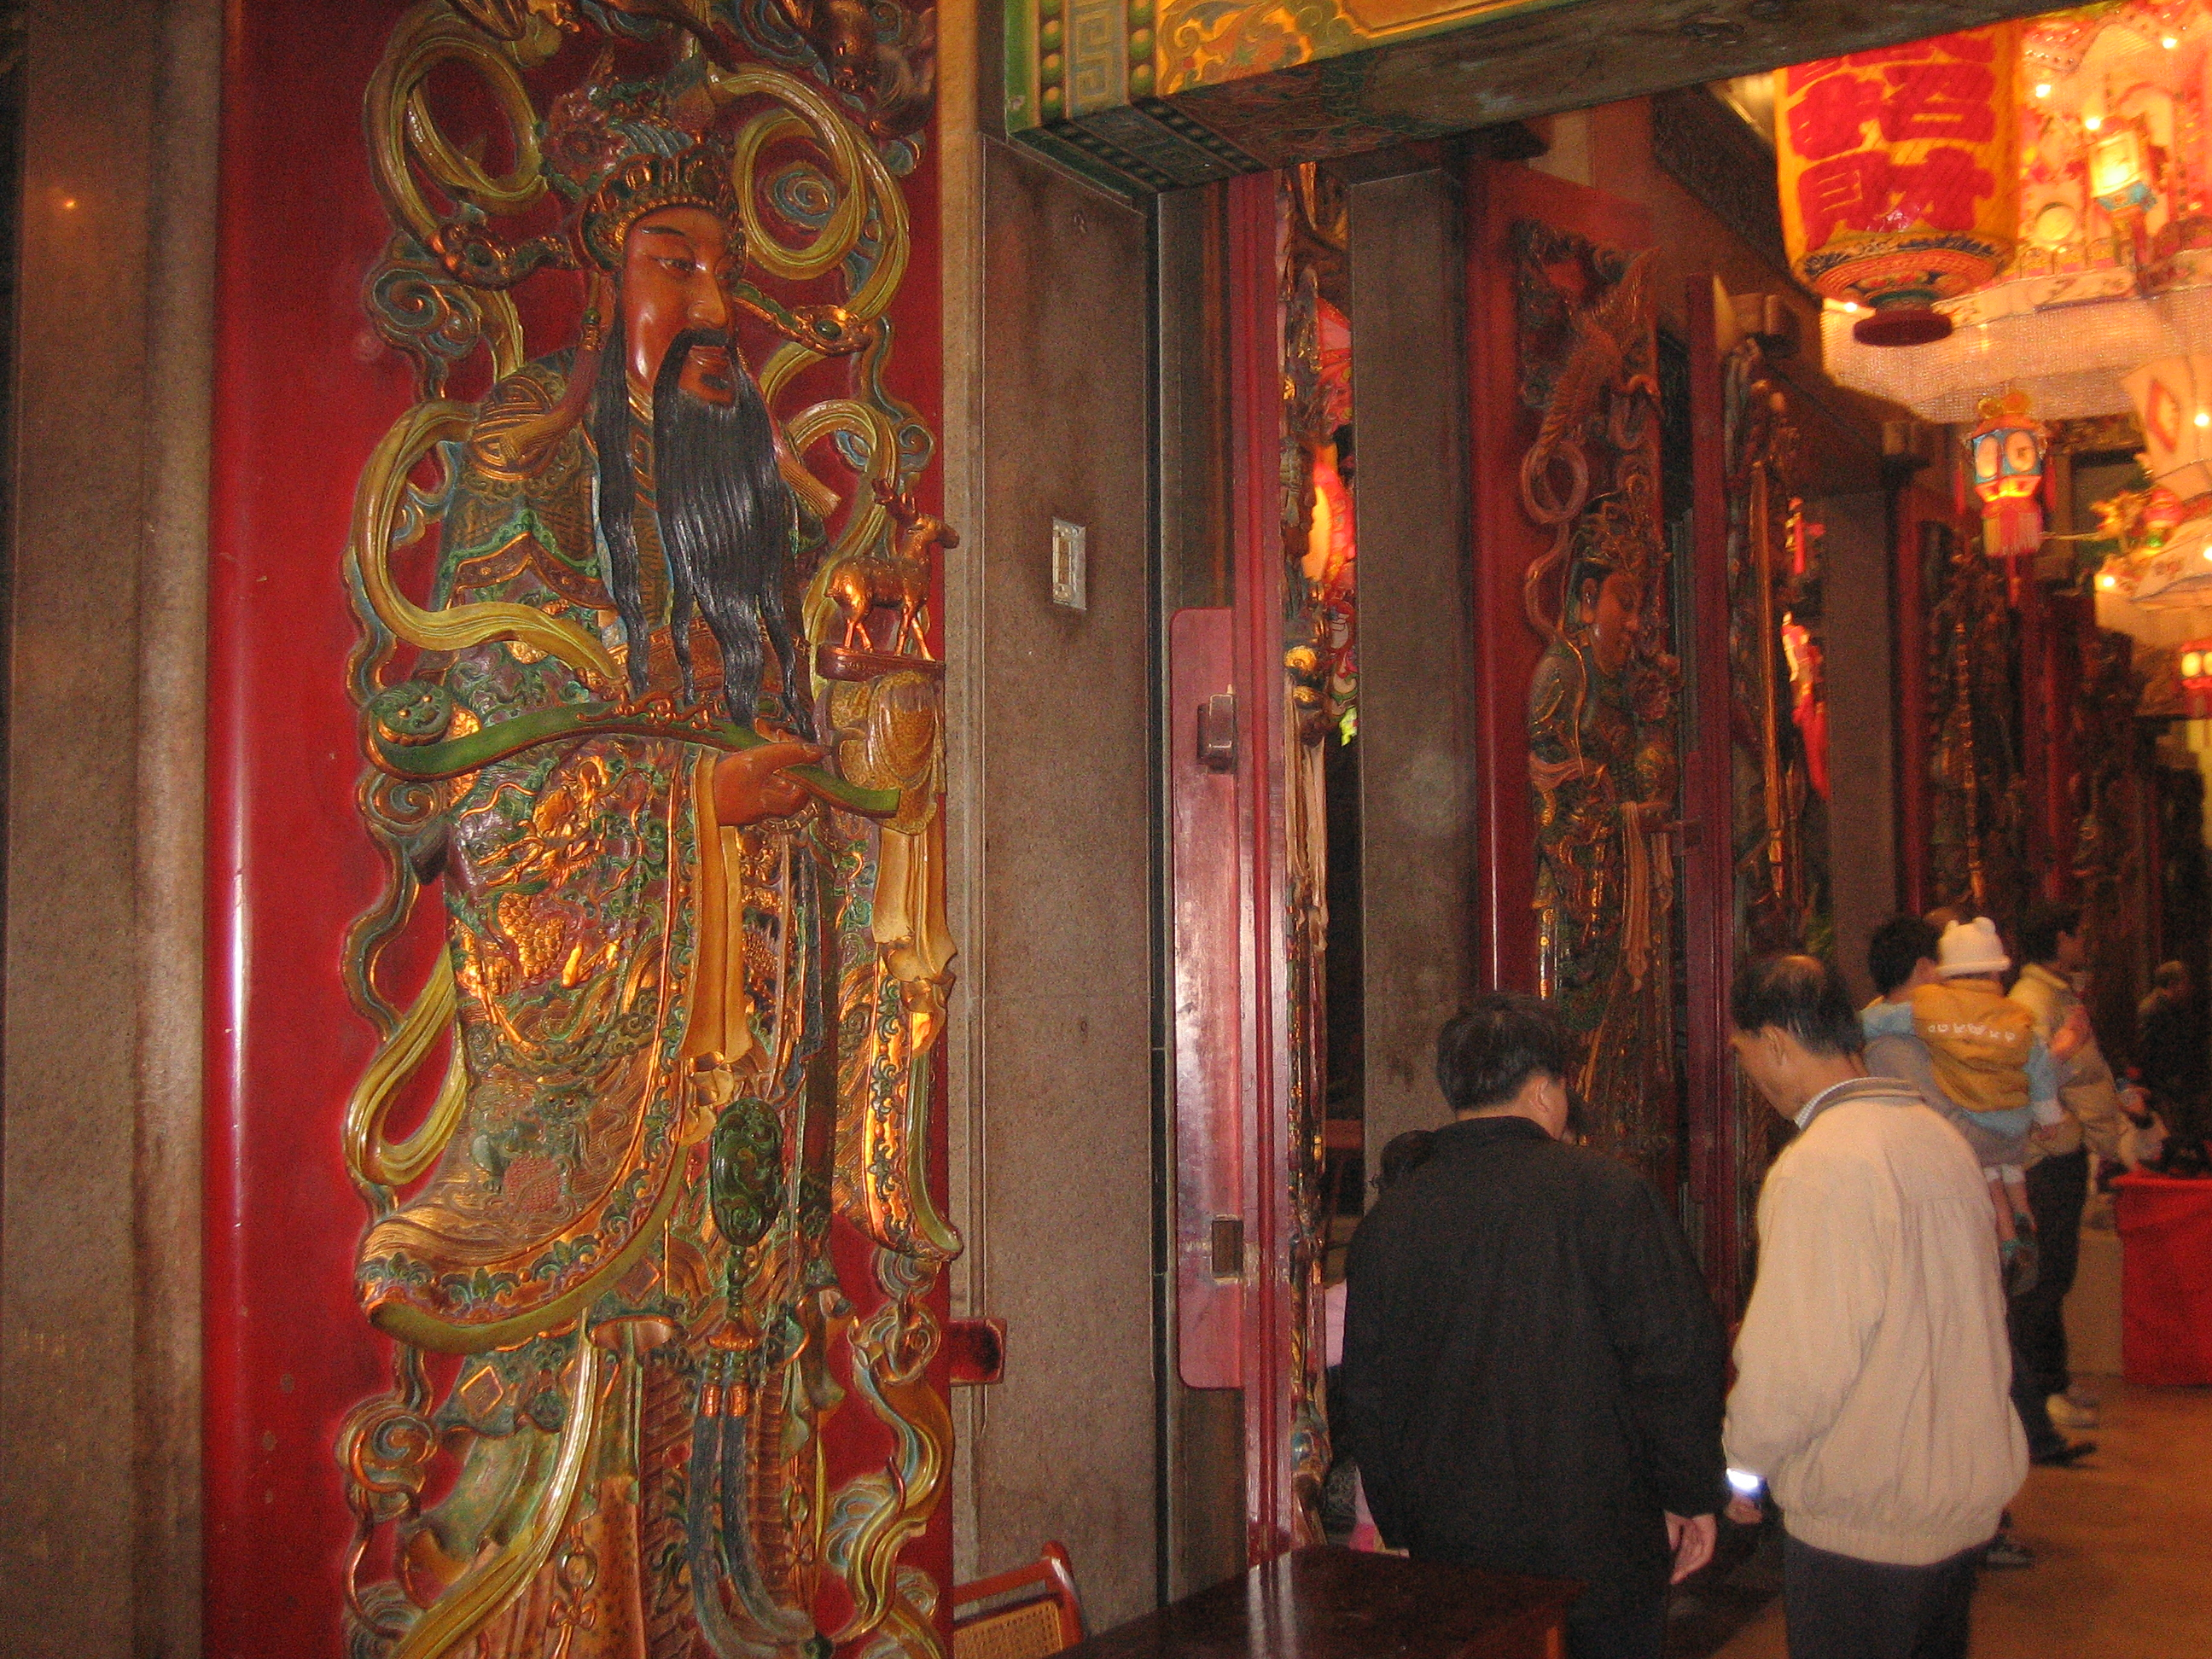 In old Dajia temple